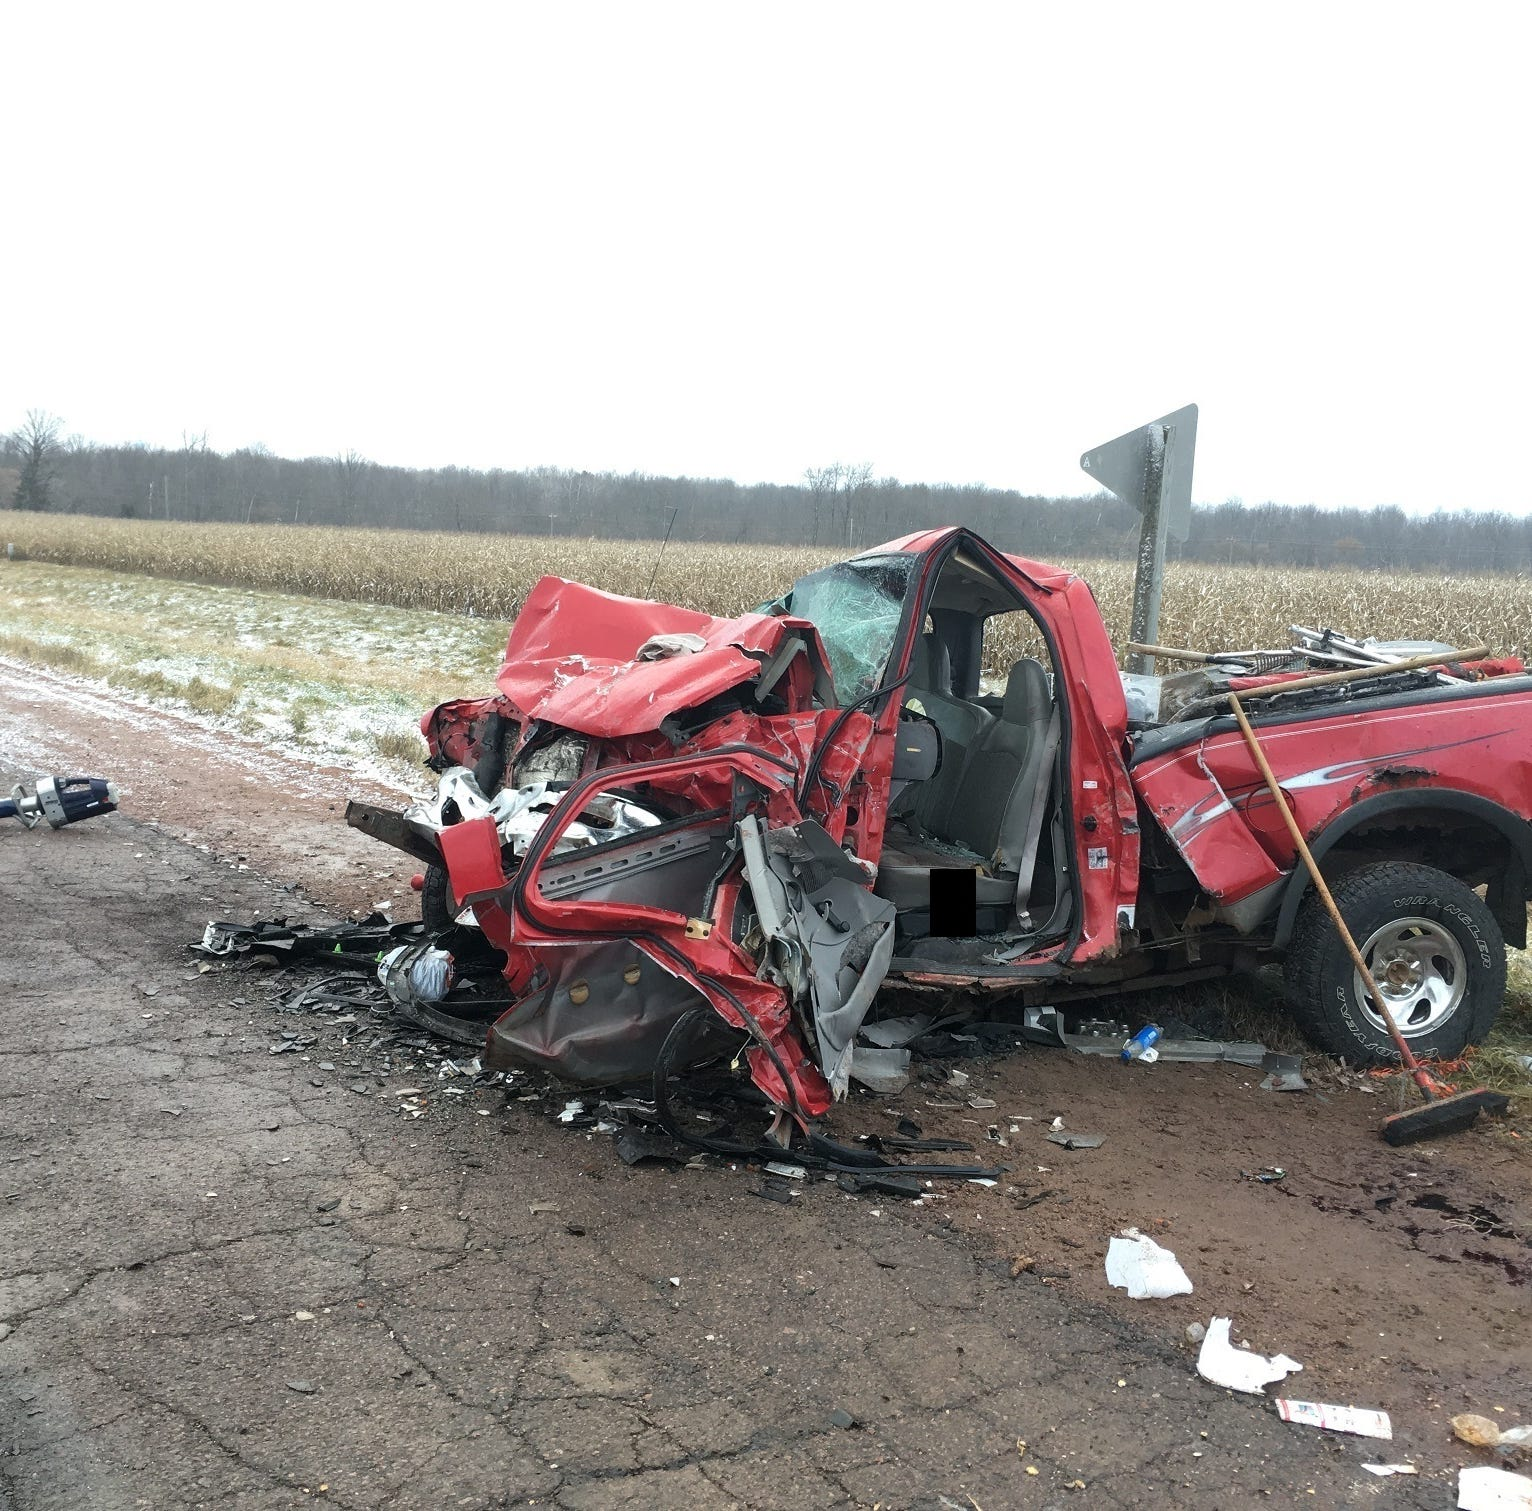 5 injured in two-vehicle crash on State 13 between Colby and Unity